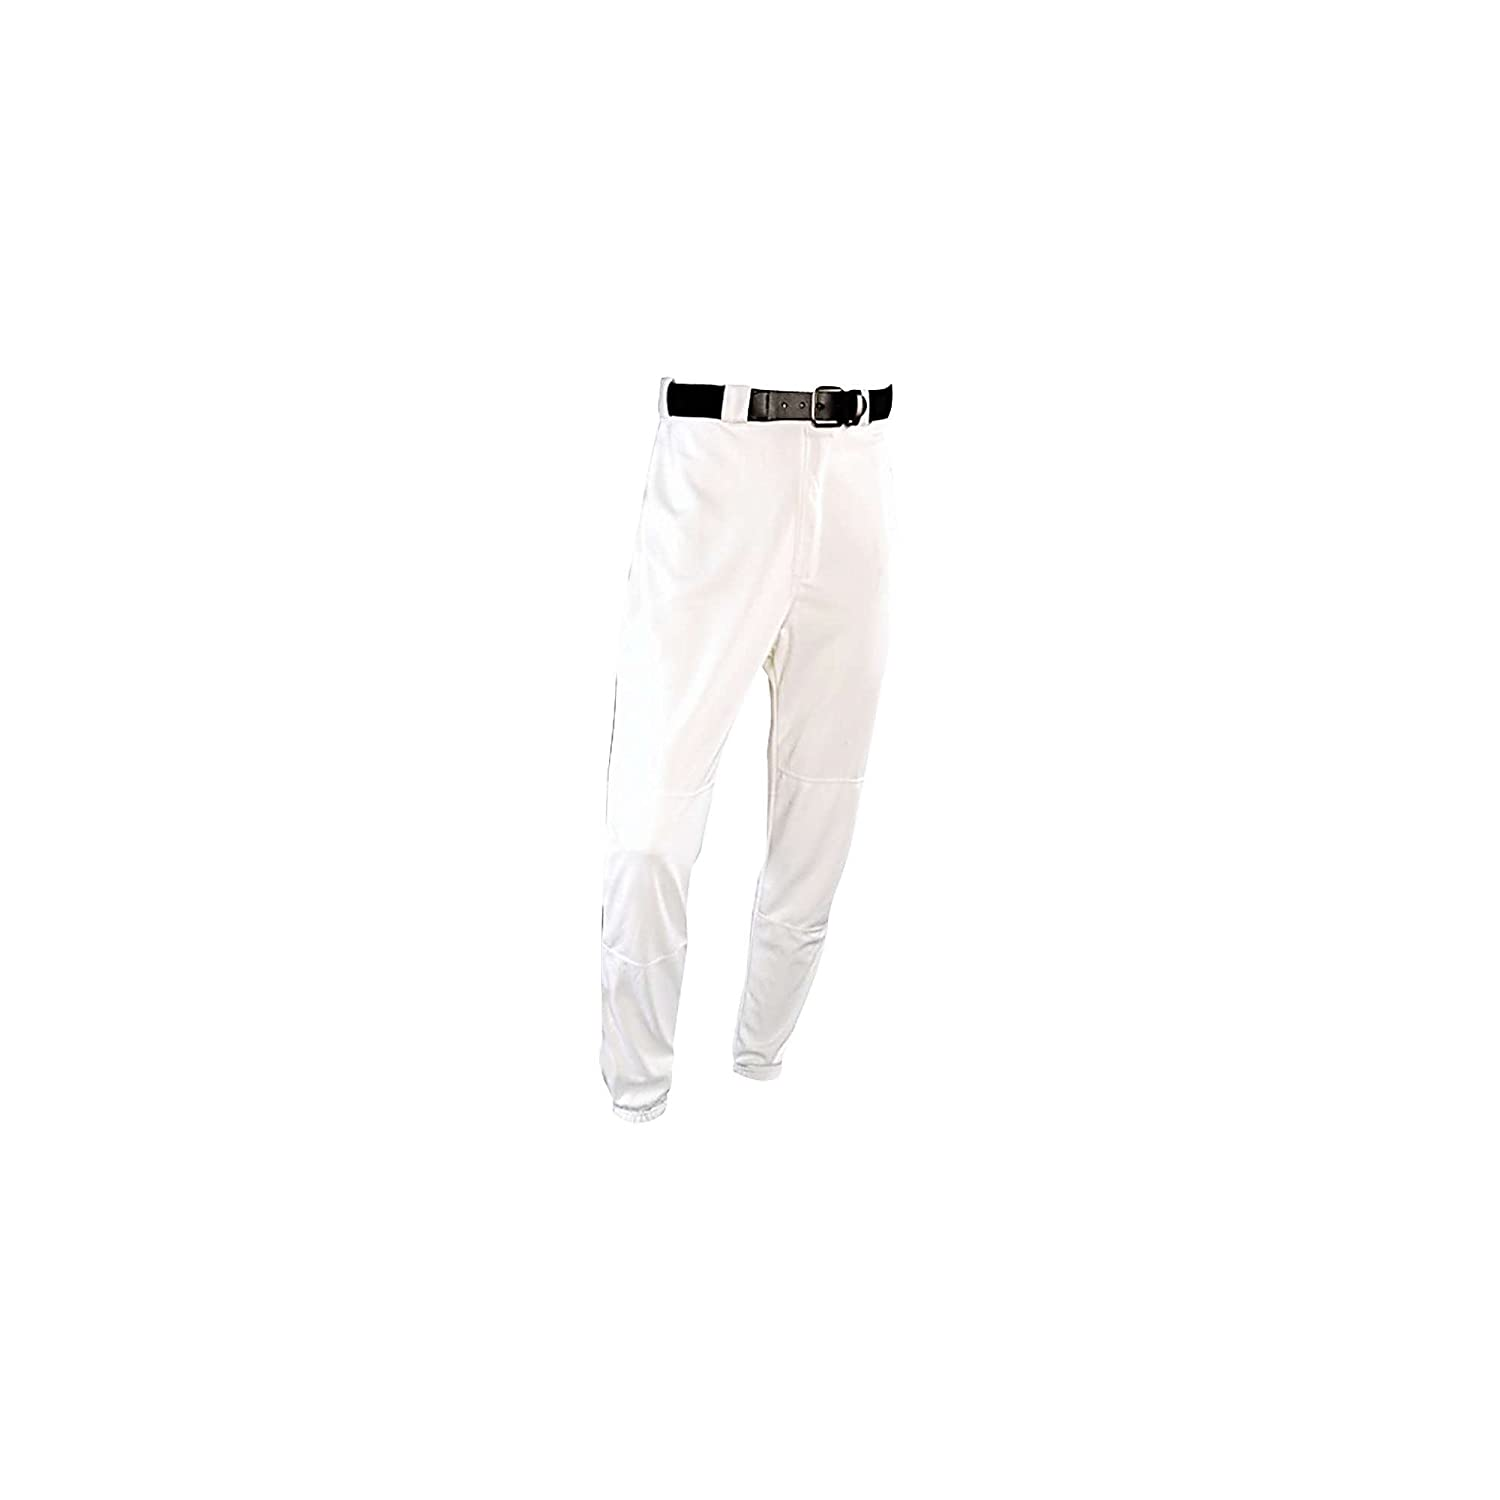 Russell Athletic Youth Game Baseball Pant - Weiß Weiß Weiß B00A824N9O Bekleidung Haltbarer Service dd529d